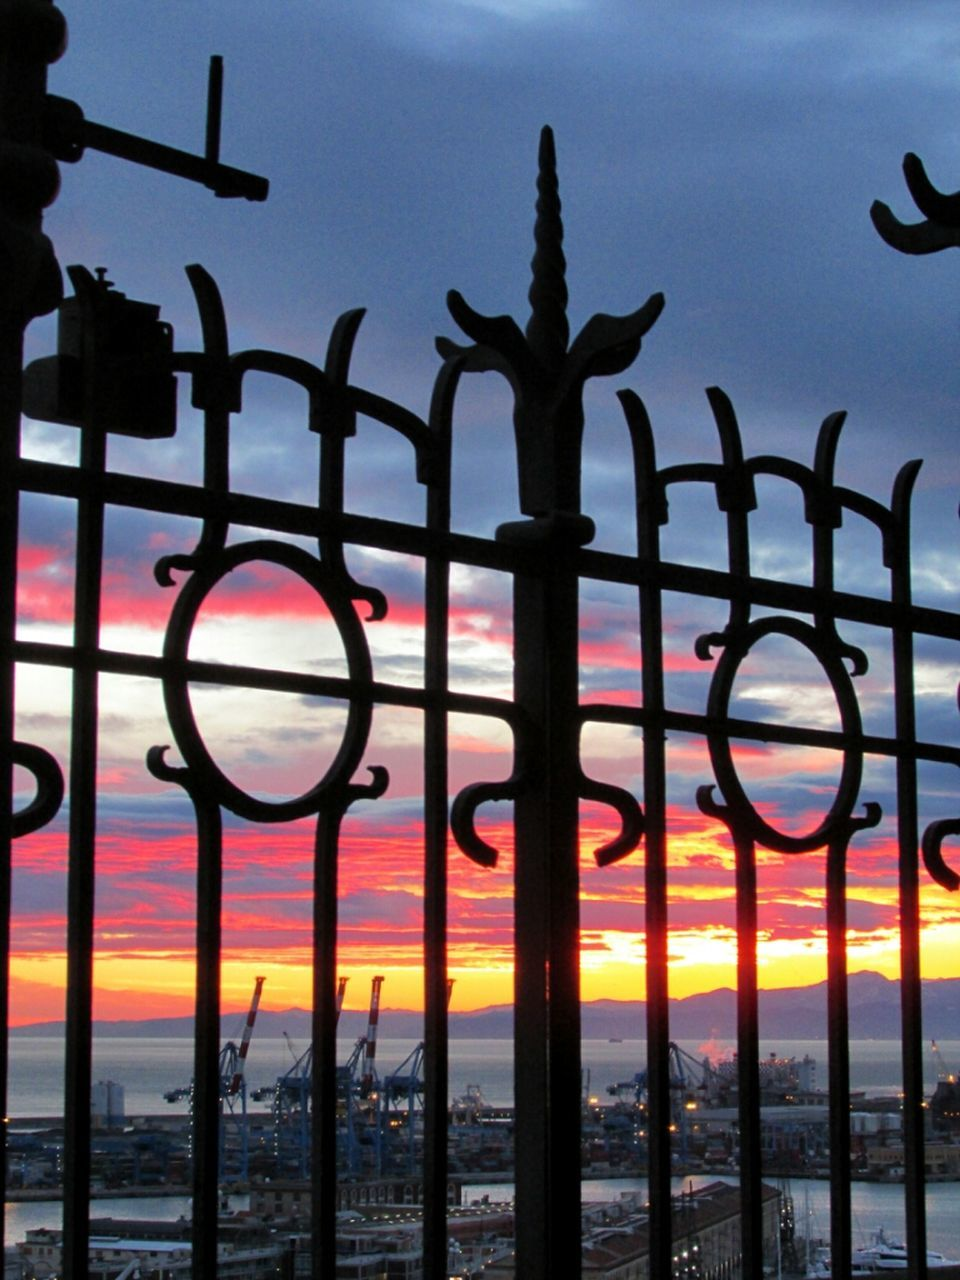 sunset, protection, silhouette, safety, dusk, metal, sky, fence, travel destinations, tranquil scene, close-up, orange color, dramatic sky, romantic sky, scenics, cloud - sky, tranquility, back lit, outdoors, atmospheric mood, atmosphere, beauty in nature, sun, nature, majestic, tourism, wide, sea